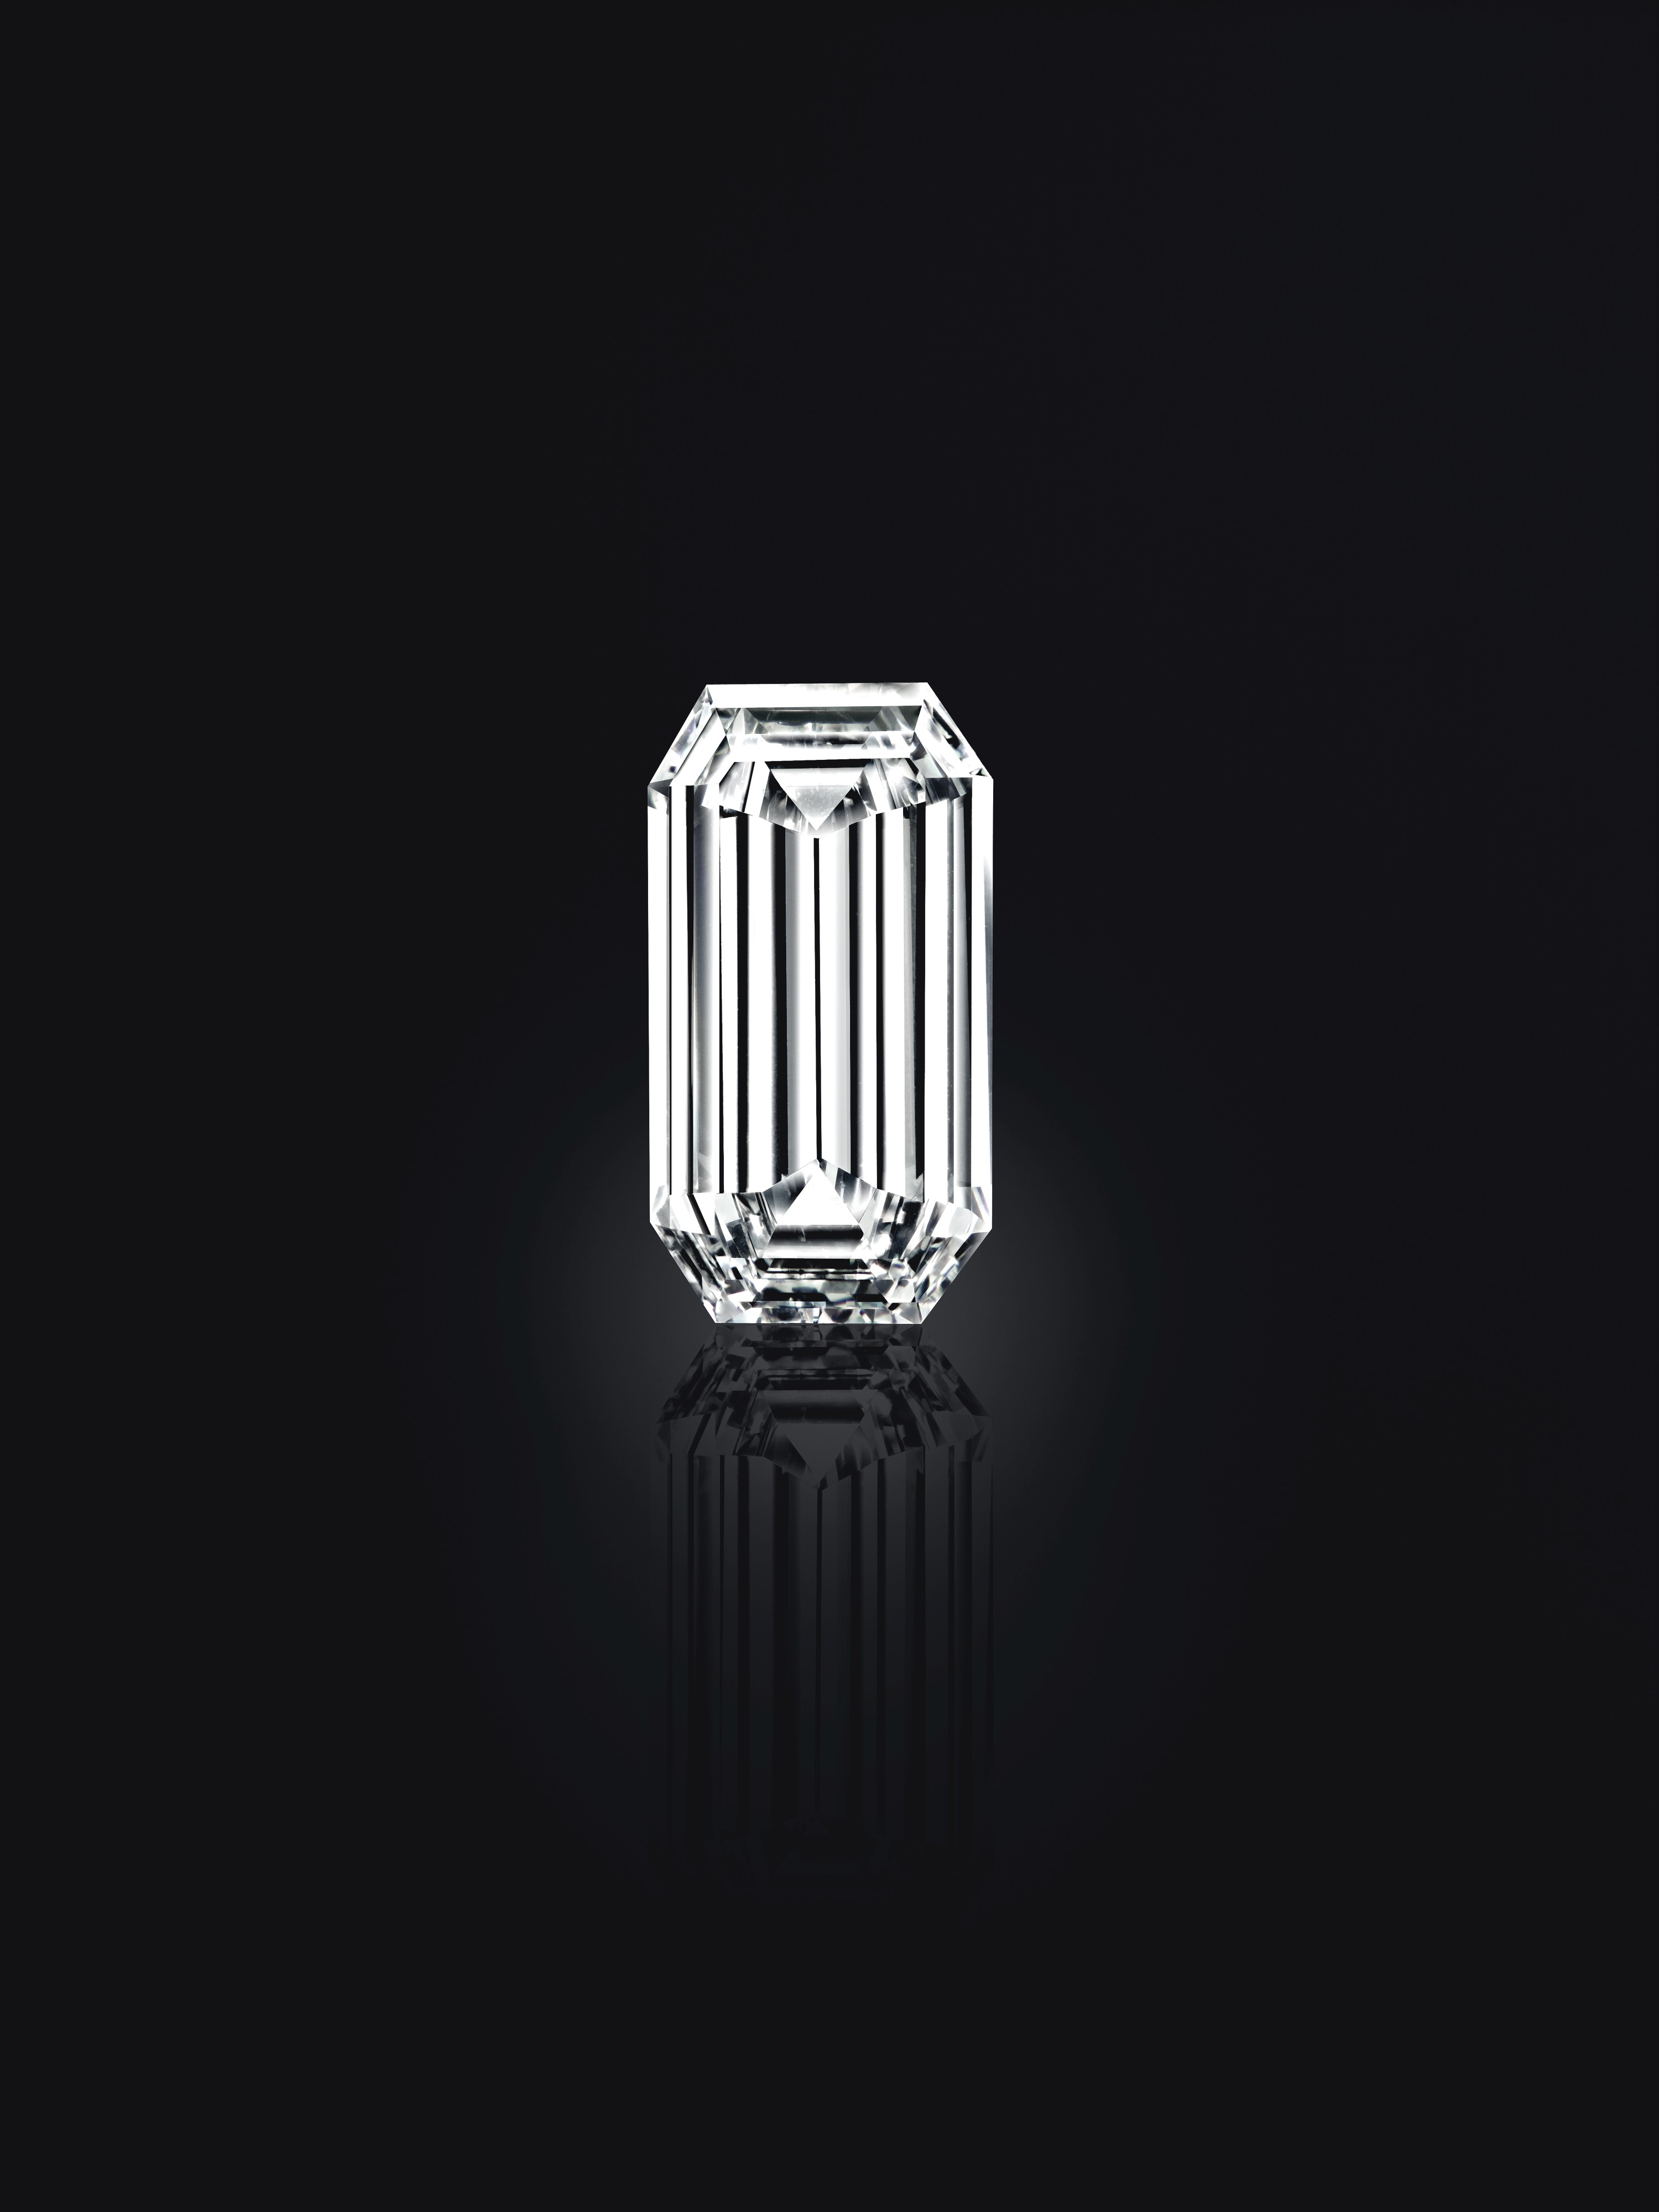 The Mirror of Paradise 52.58-carat Golconda diamond, shot on a black ground, head on, to showcase the rectangular cut of the stone.